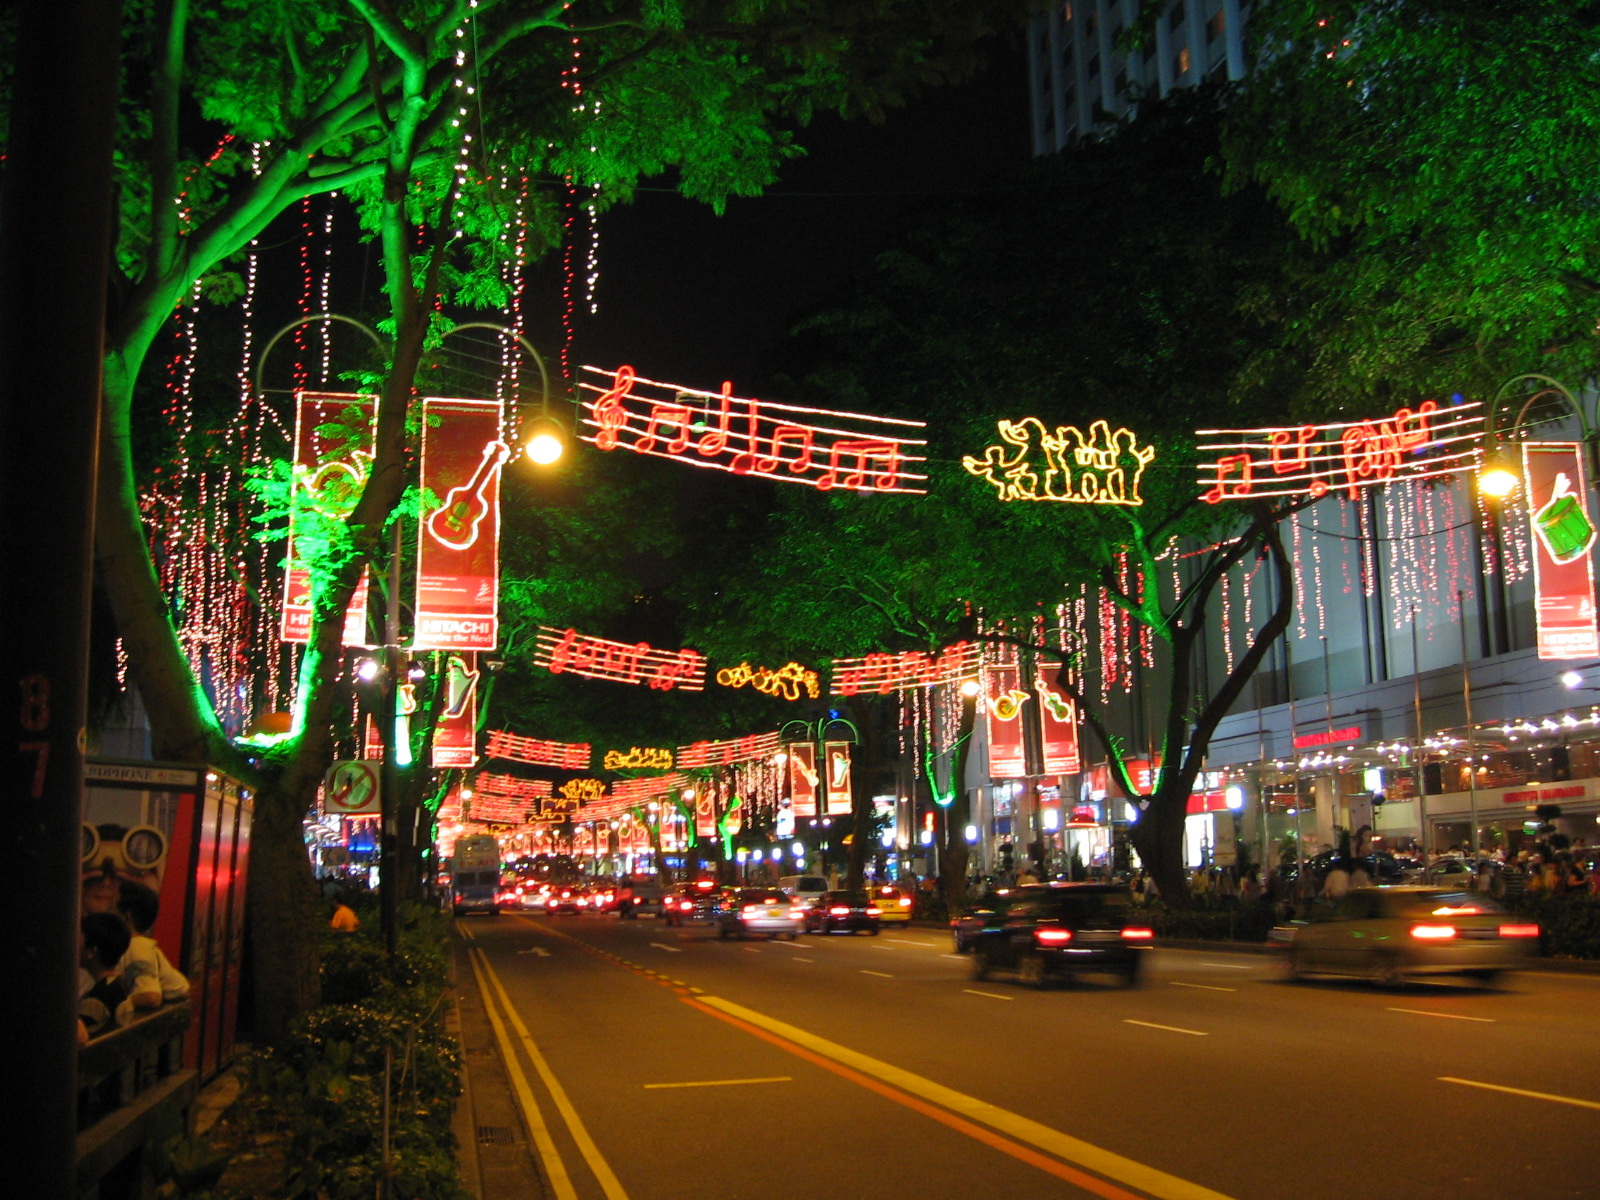 Orchard Road in Singapore is lit up elaborately near the end of every year for the Christmas season. Photo courtesy: Wikipedia